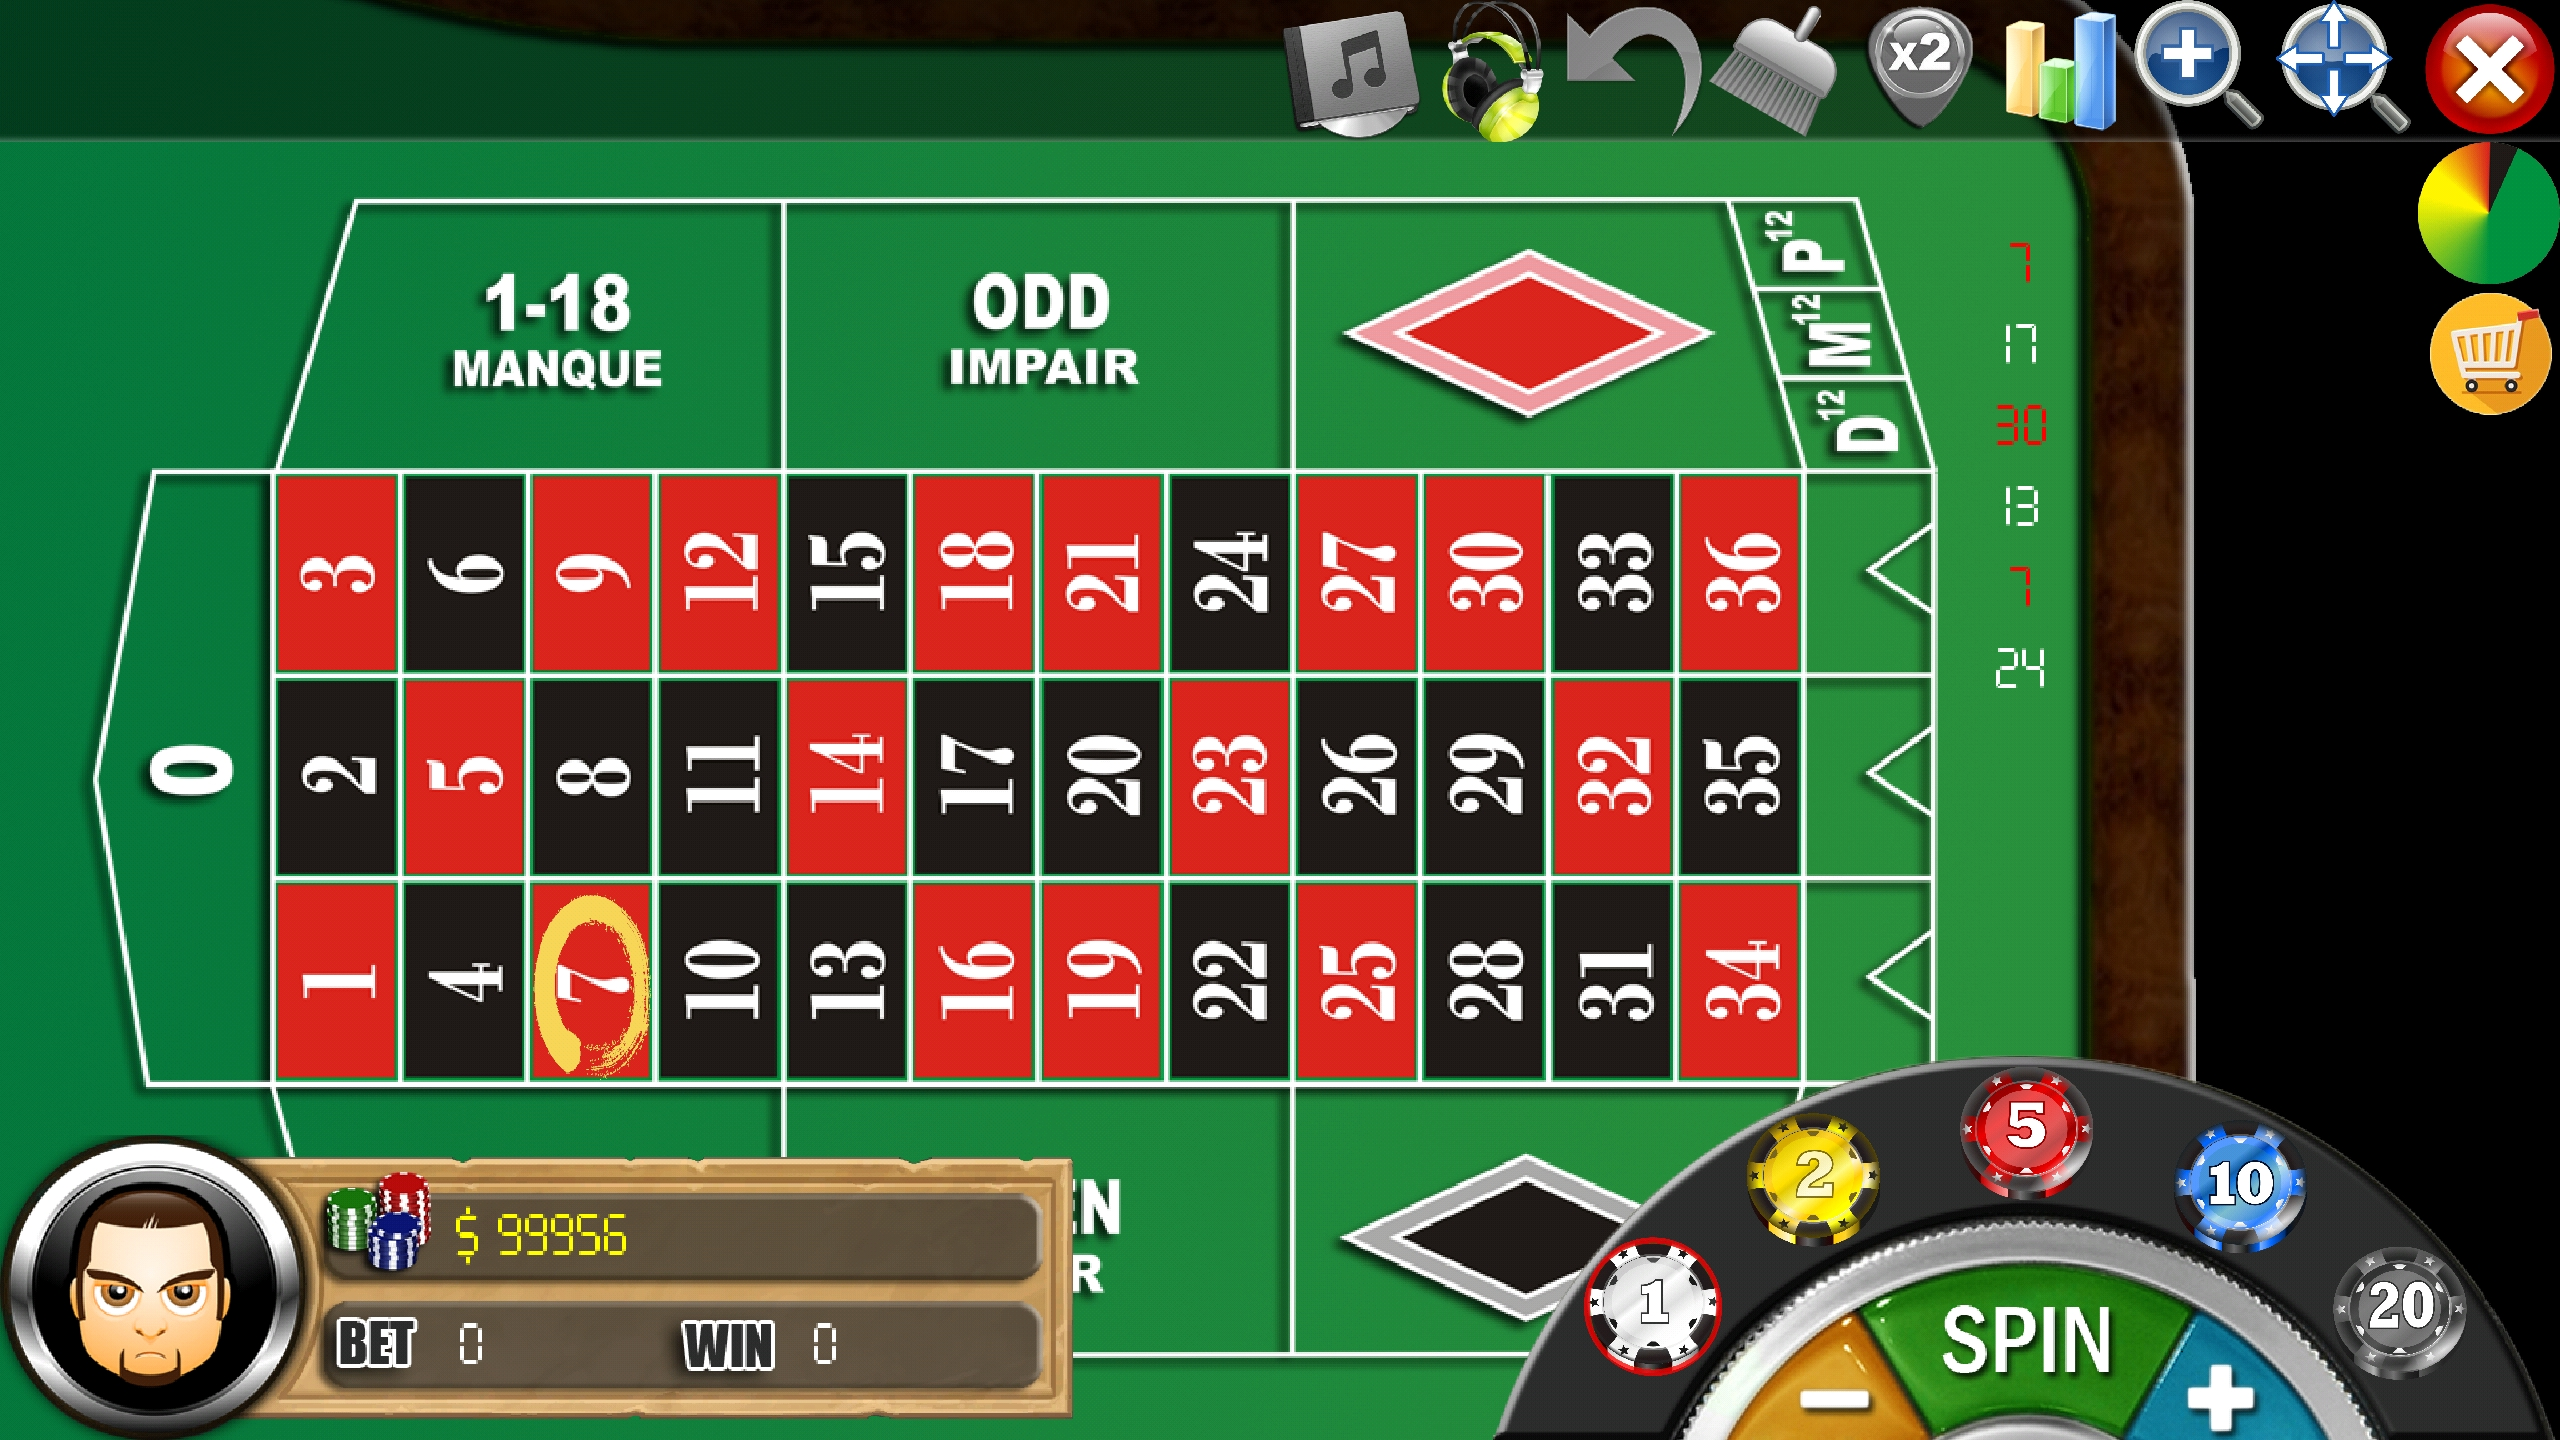 FRENCH Roulette FREE - App - Main Table Beting Screen